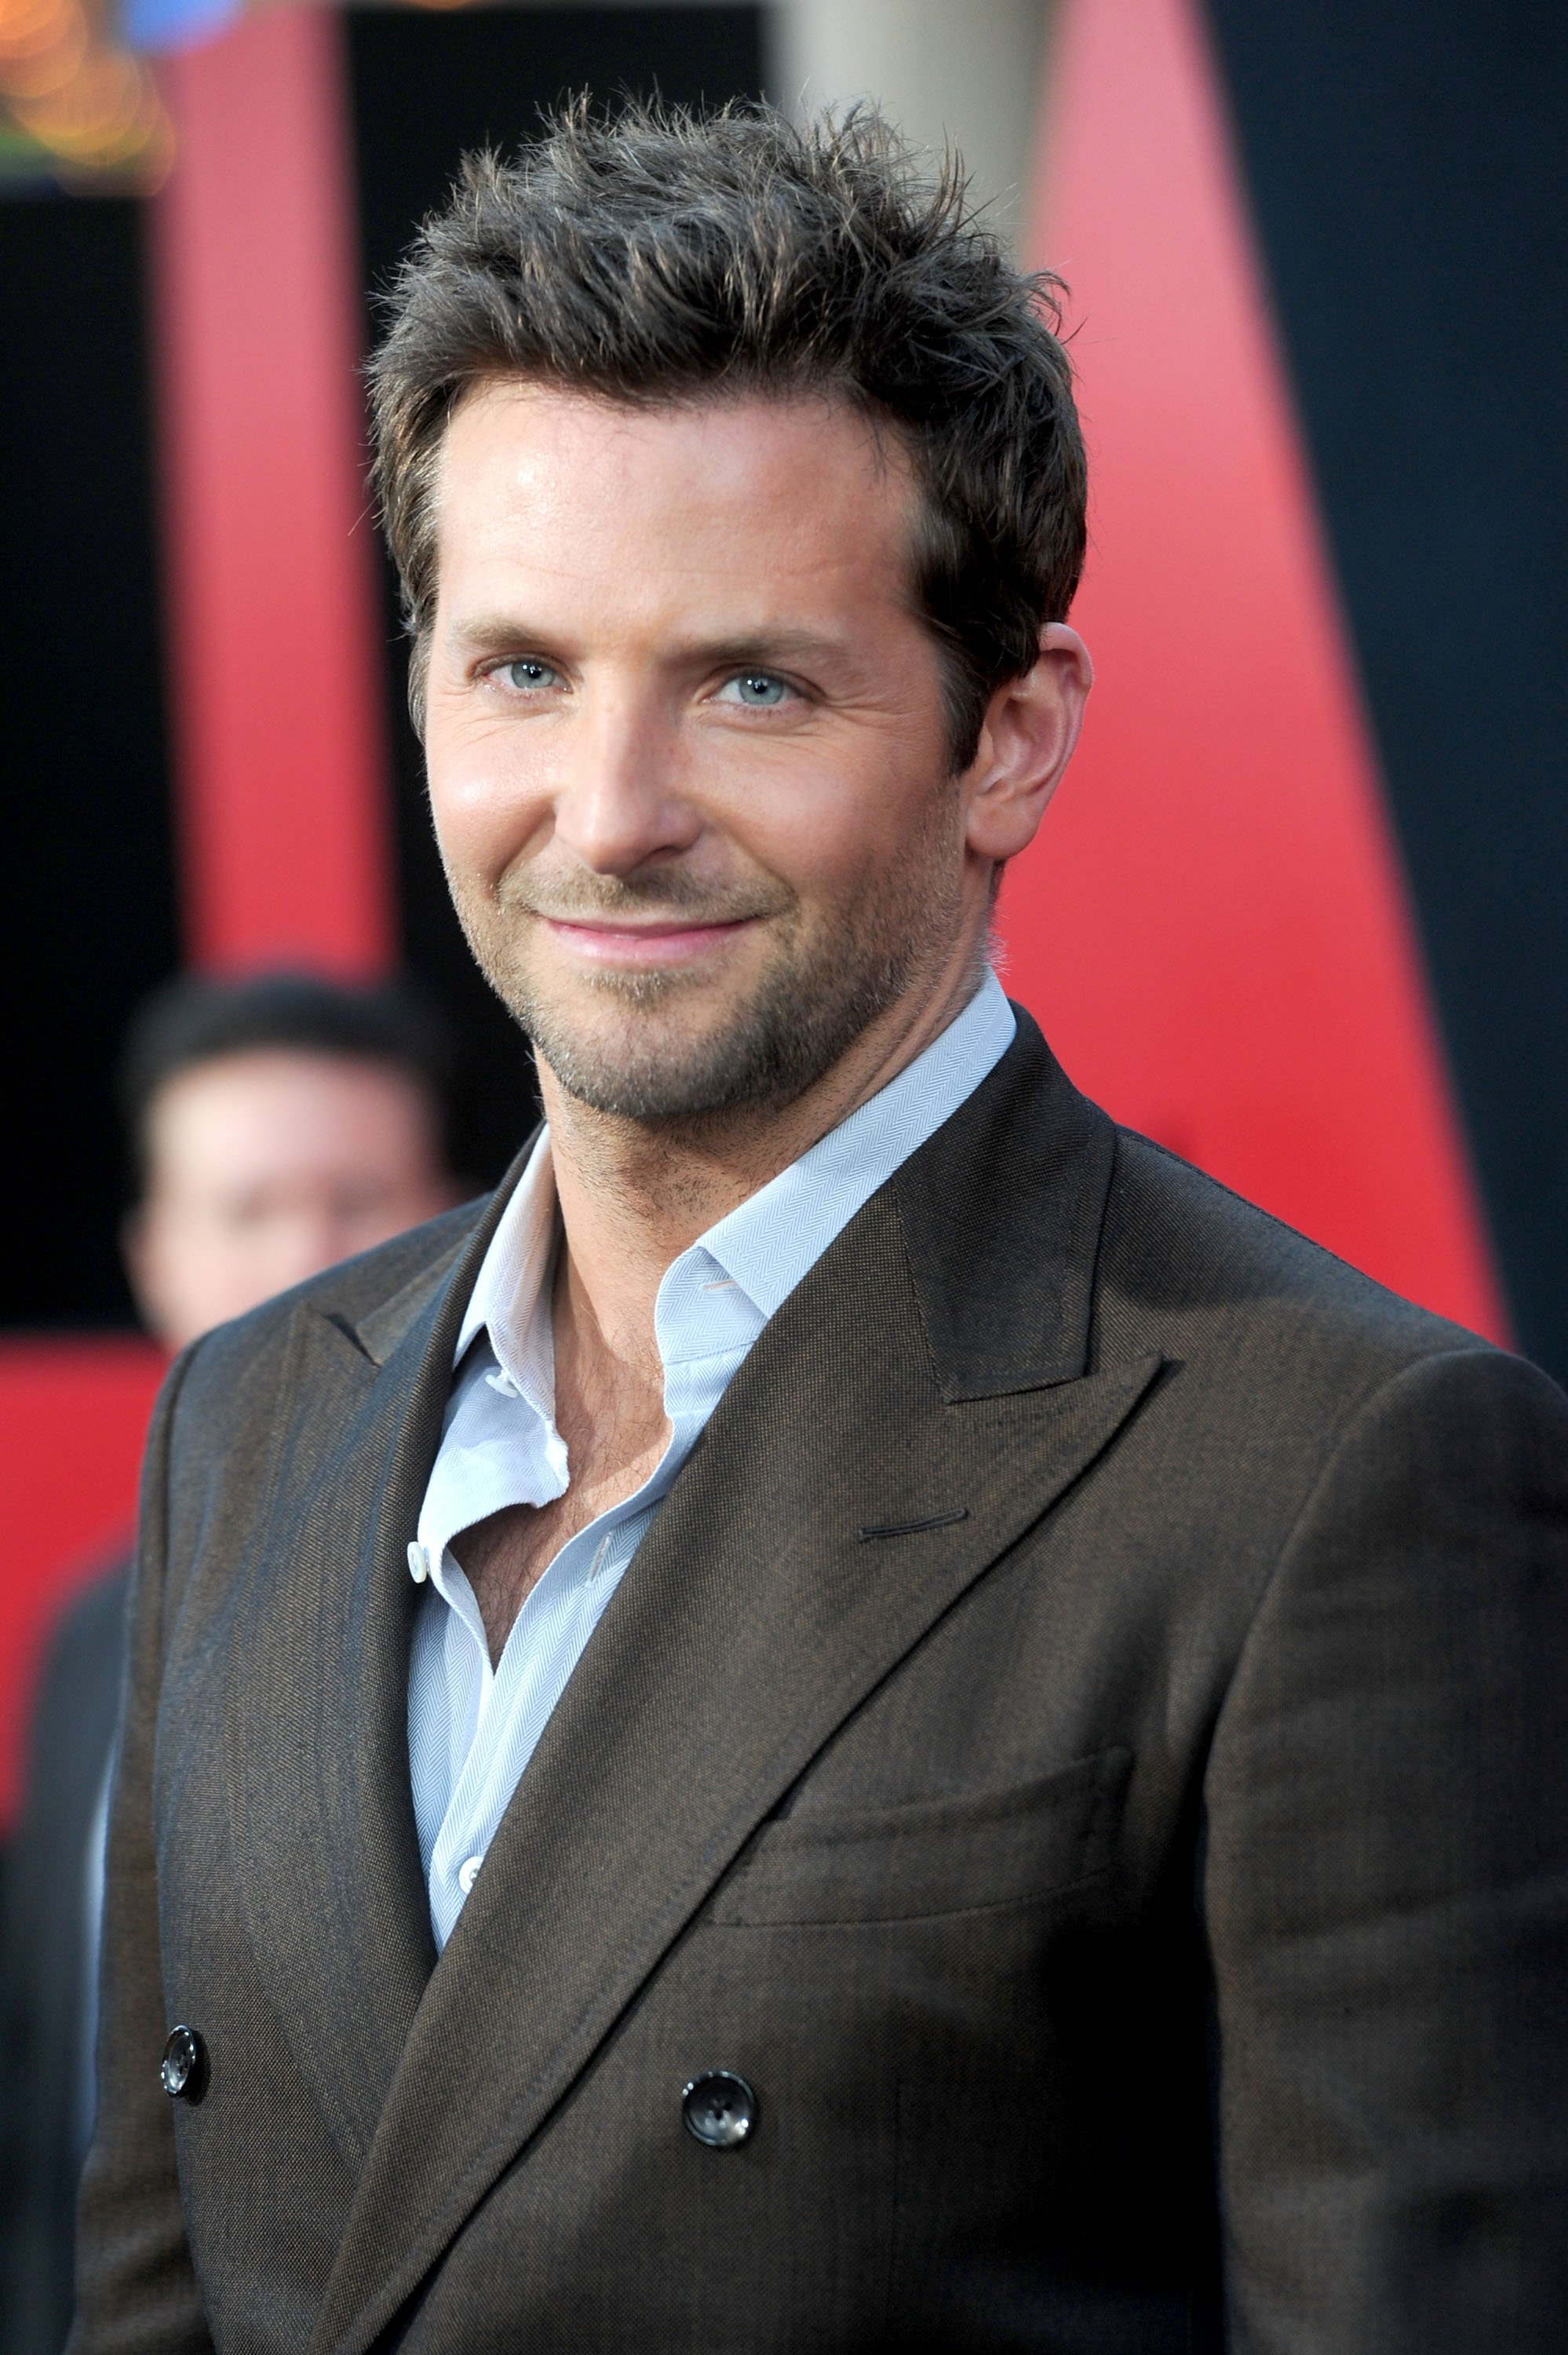 Bradley Cooper am 19. Mai 2011 in Los Angeles, Kalifornien | Quelle: Getty Images